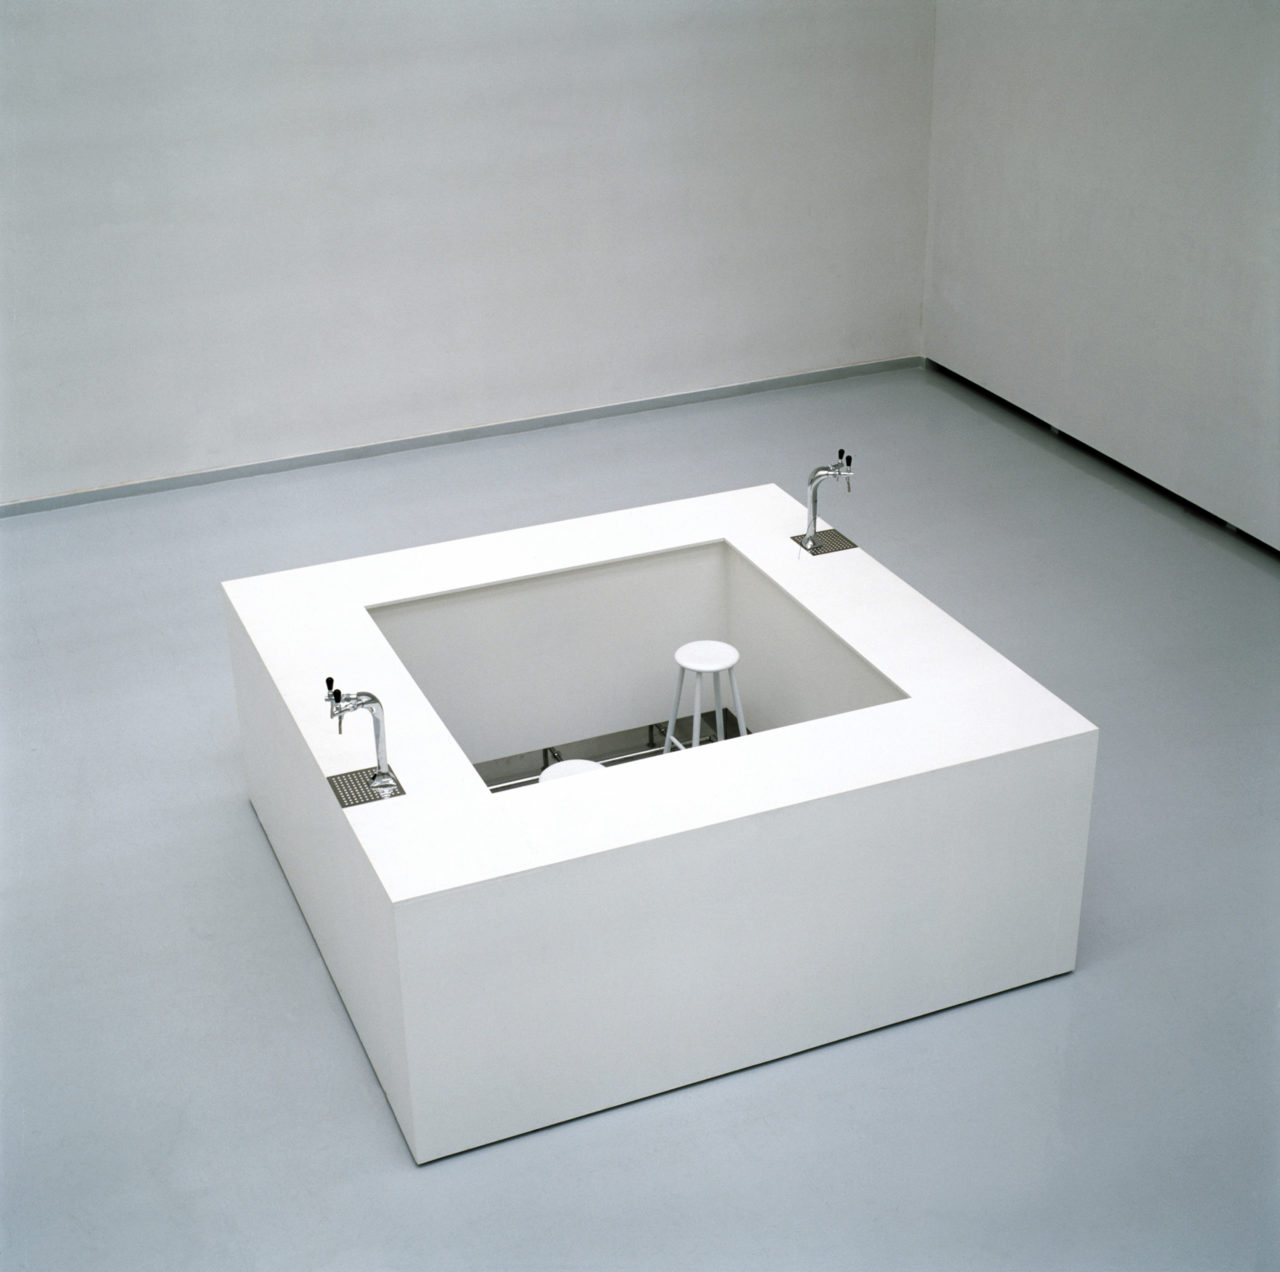 Elmgreen & Dragset, Powerless structures, Fig. 21 (Queer bar) (1998)